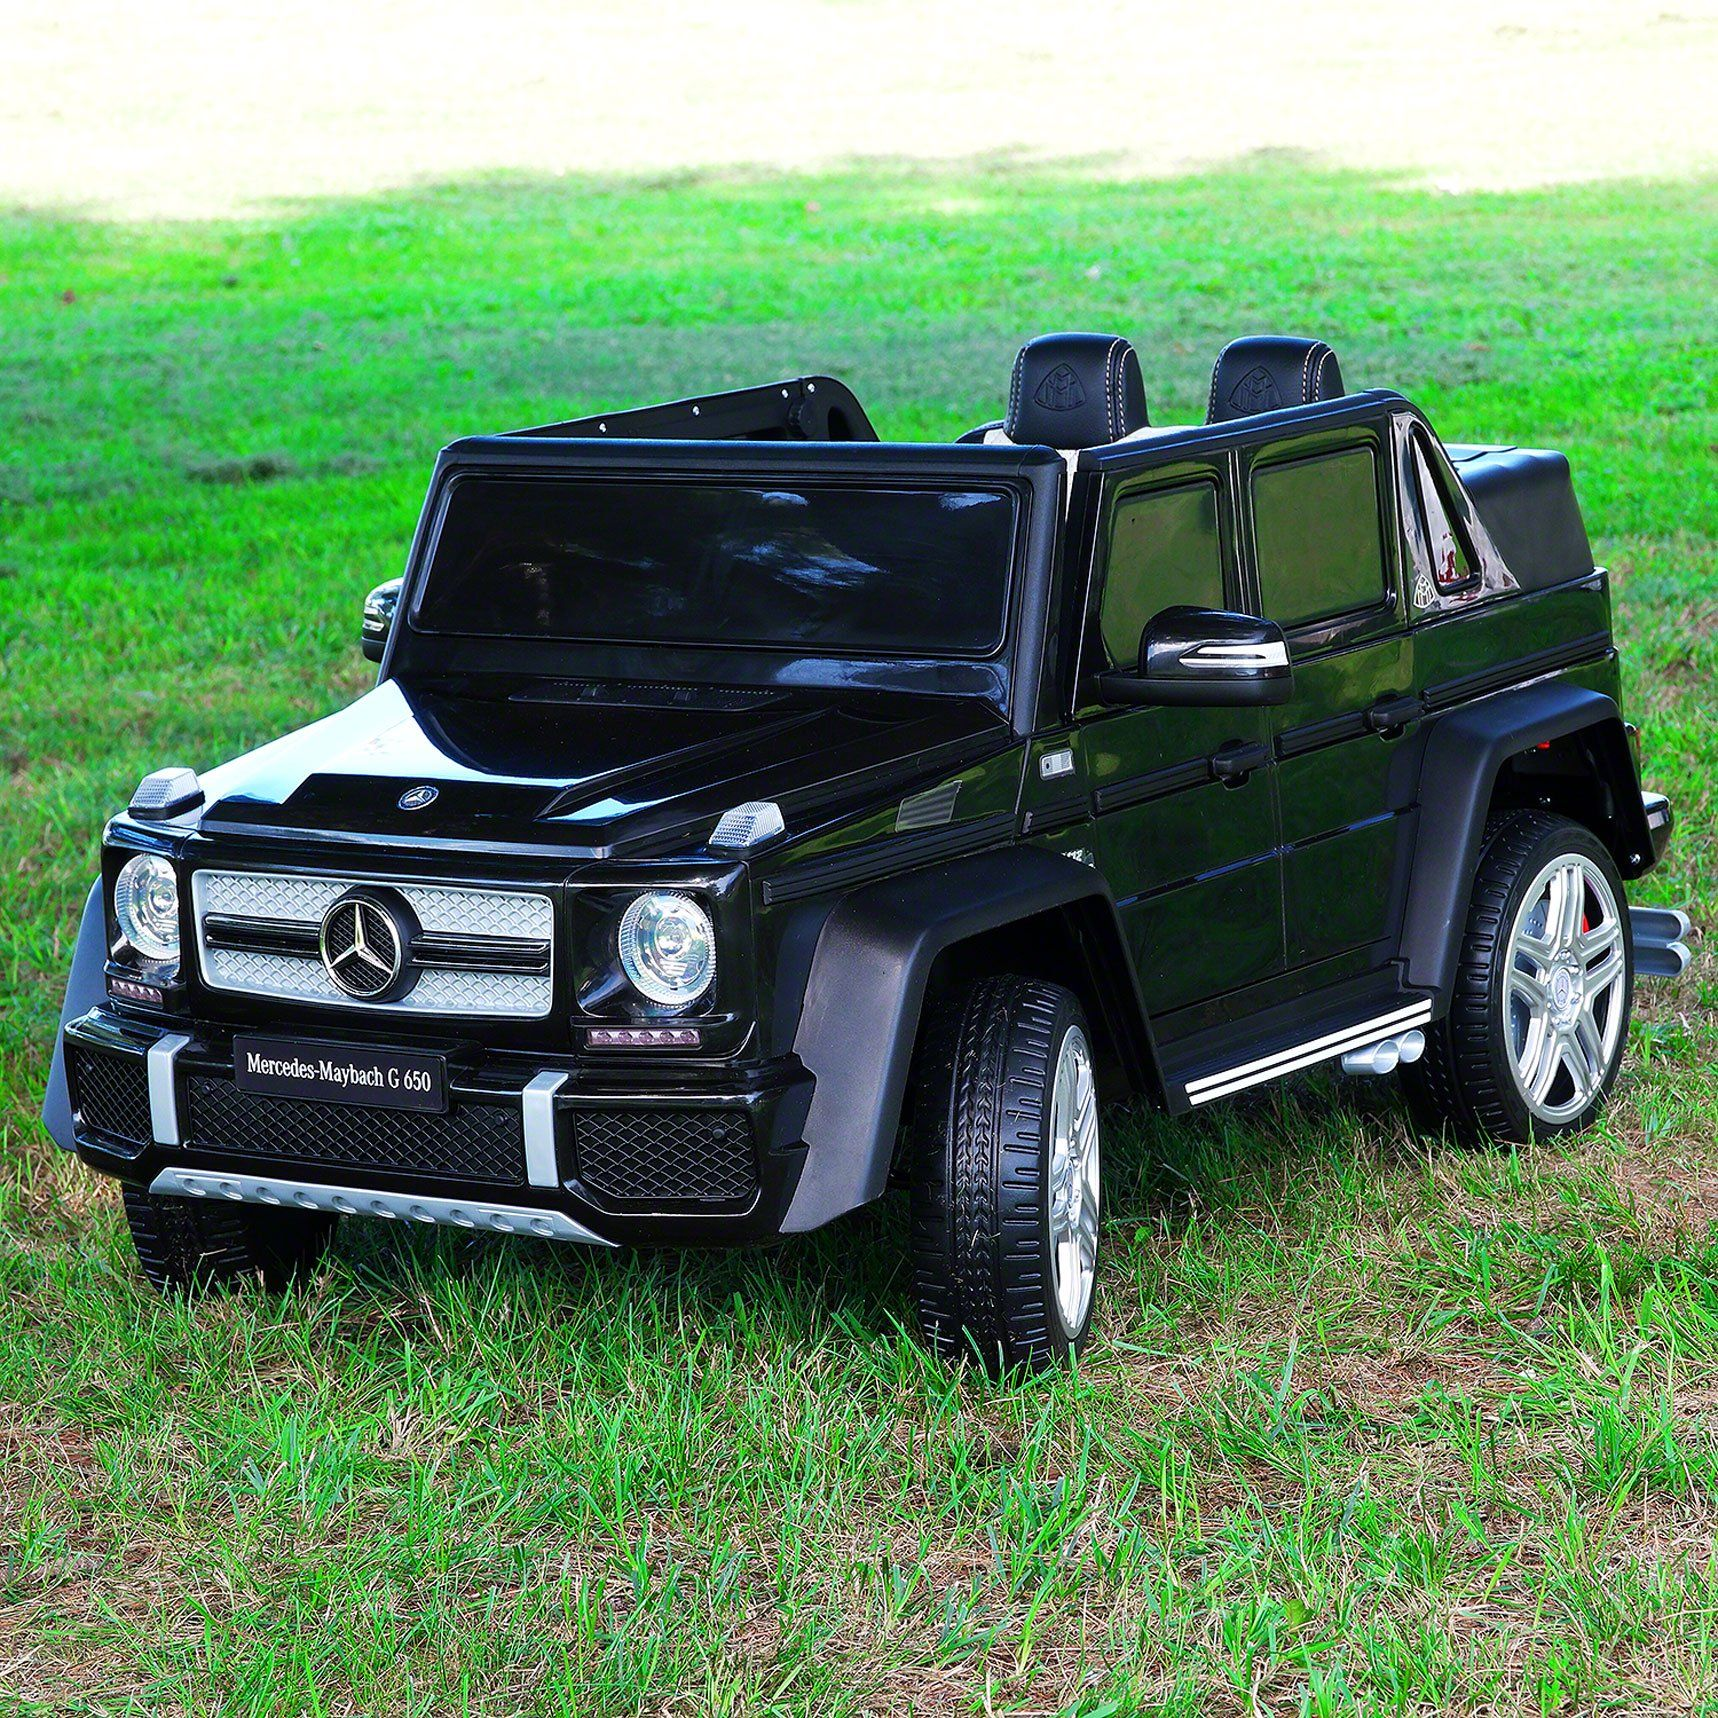 Mercedes Maybach G650 12v Kids Ride On Car With Parental Remote Black In 2020 Mercedes Maybach Kids Ride On Maybach